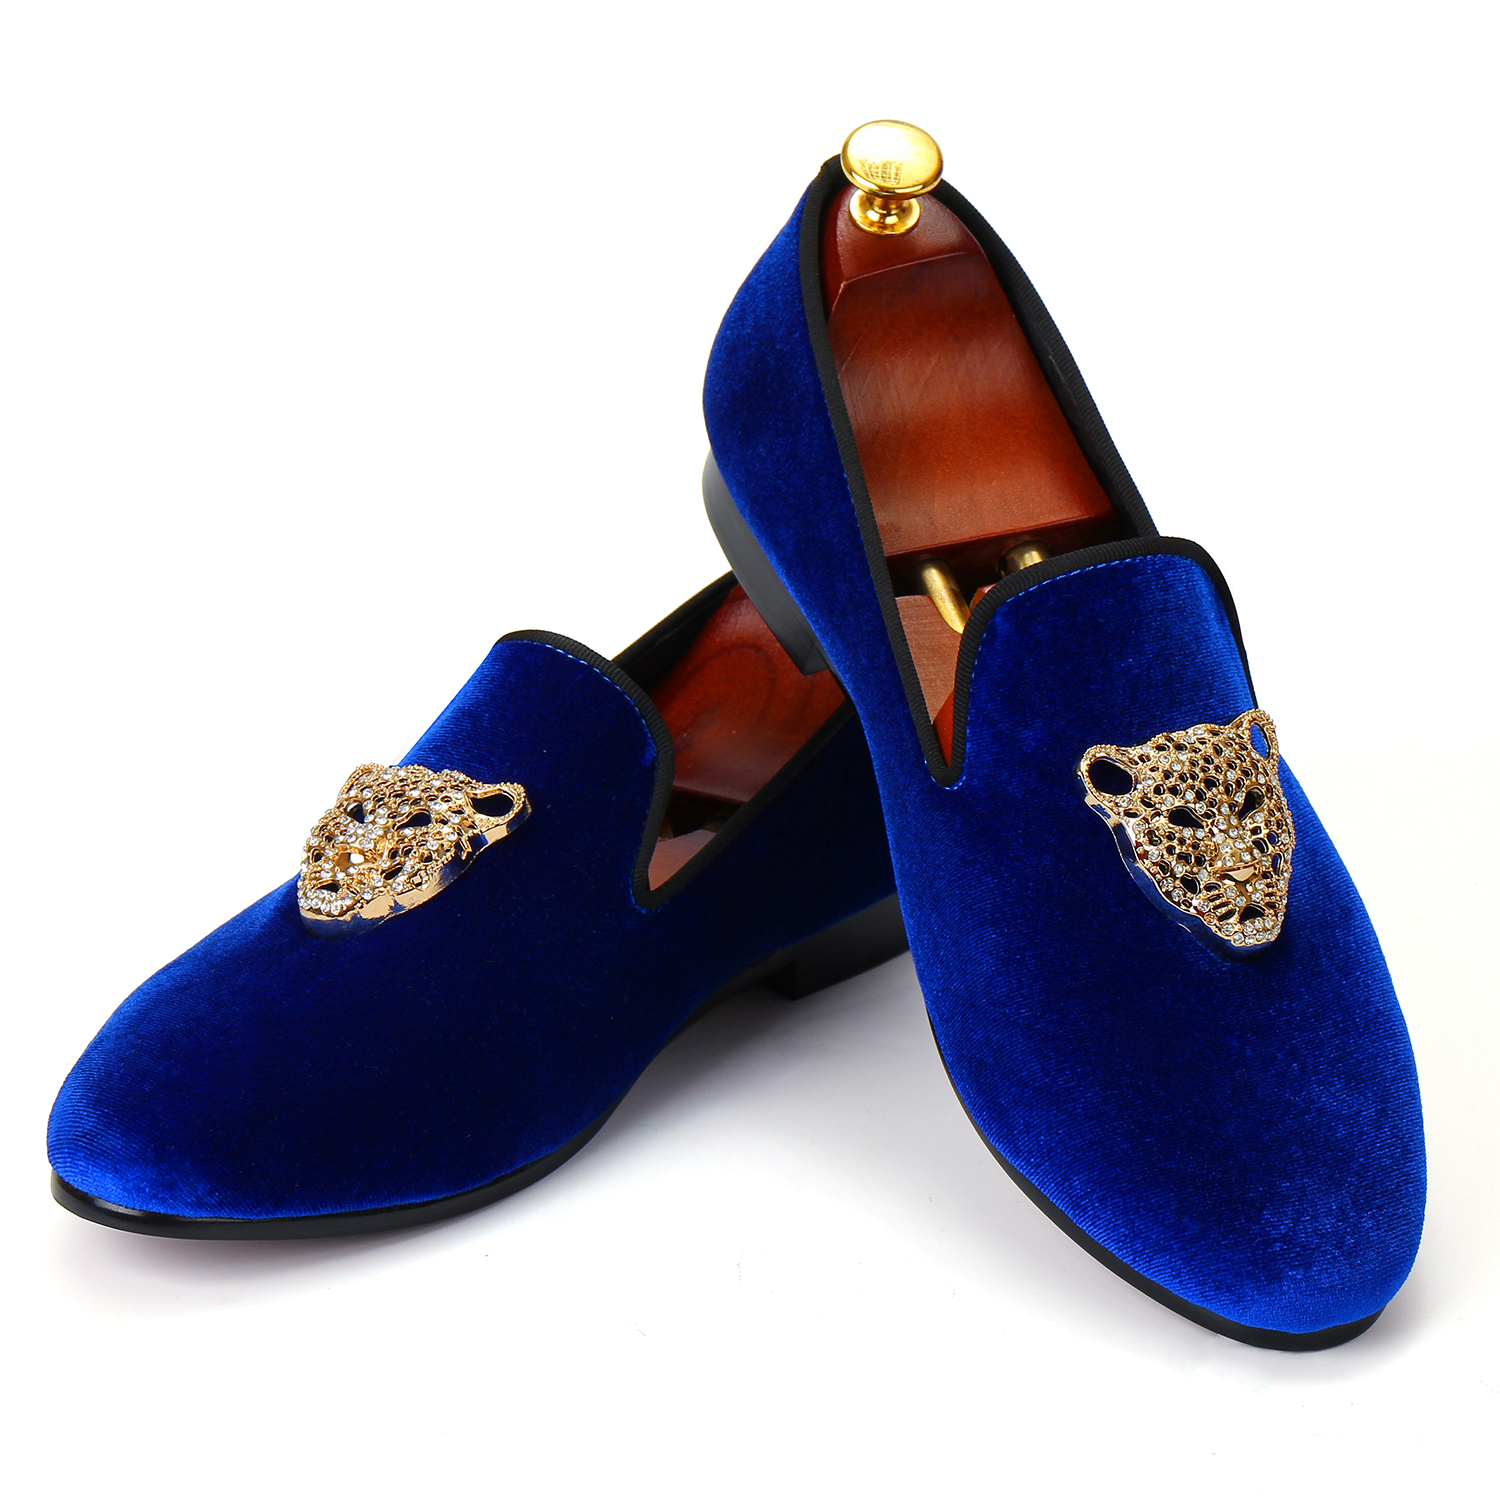 Velvet Fabric With Fox Head Diamond Buckle Banquet Mens Shoes Mens Pointed Toe Dress Shoes Men's Shoes Formal Shoes